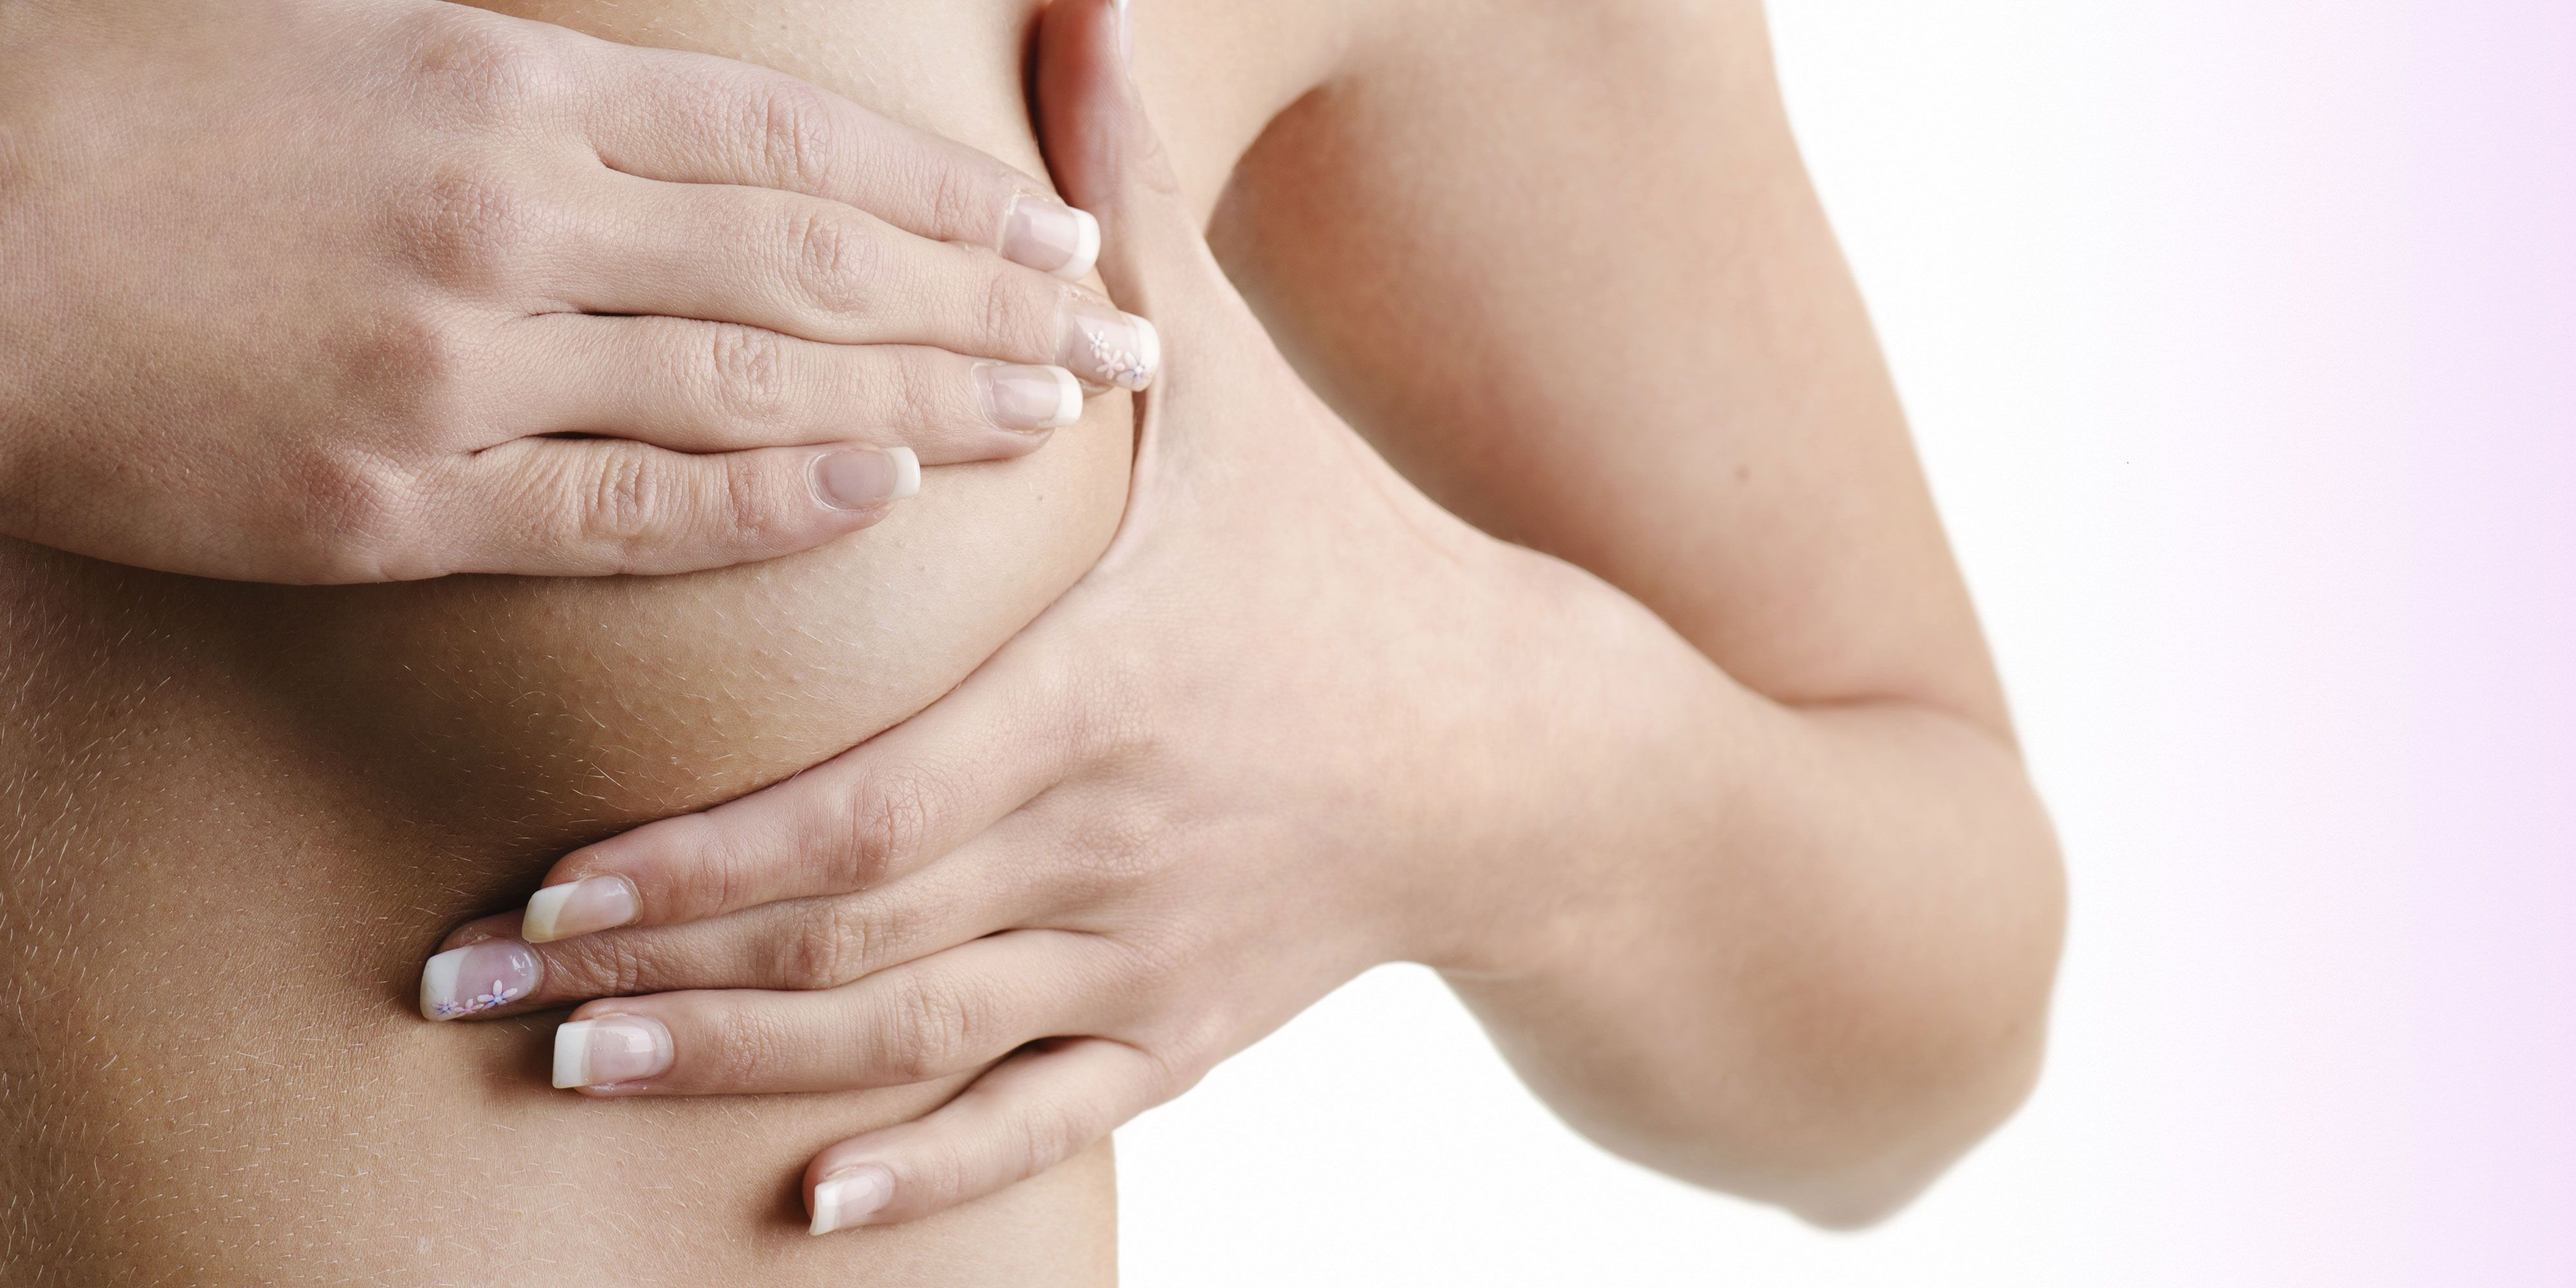 What are the causes of breast lactation